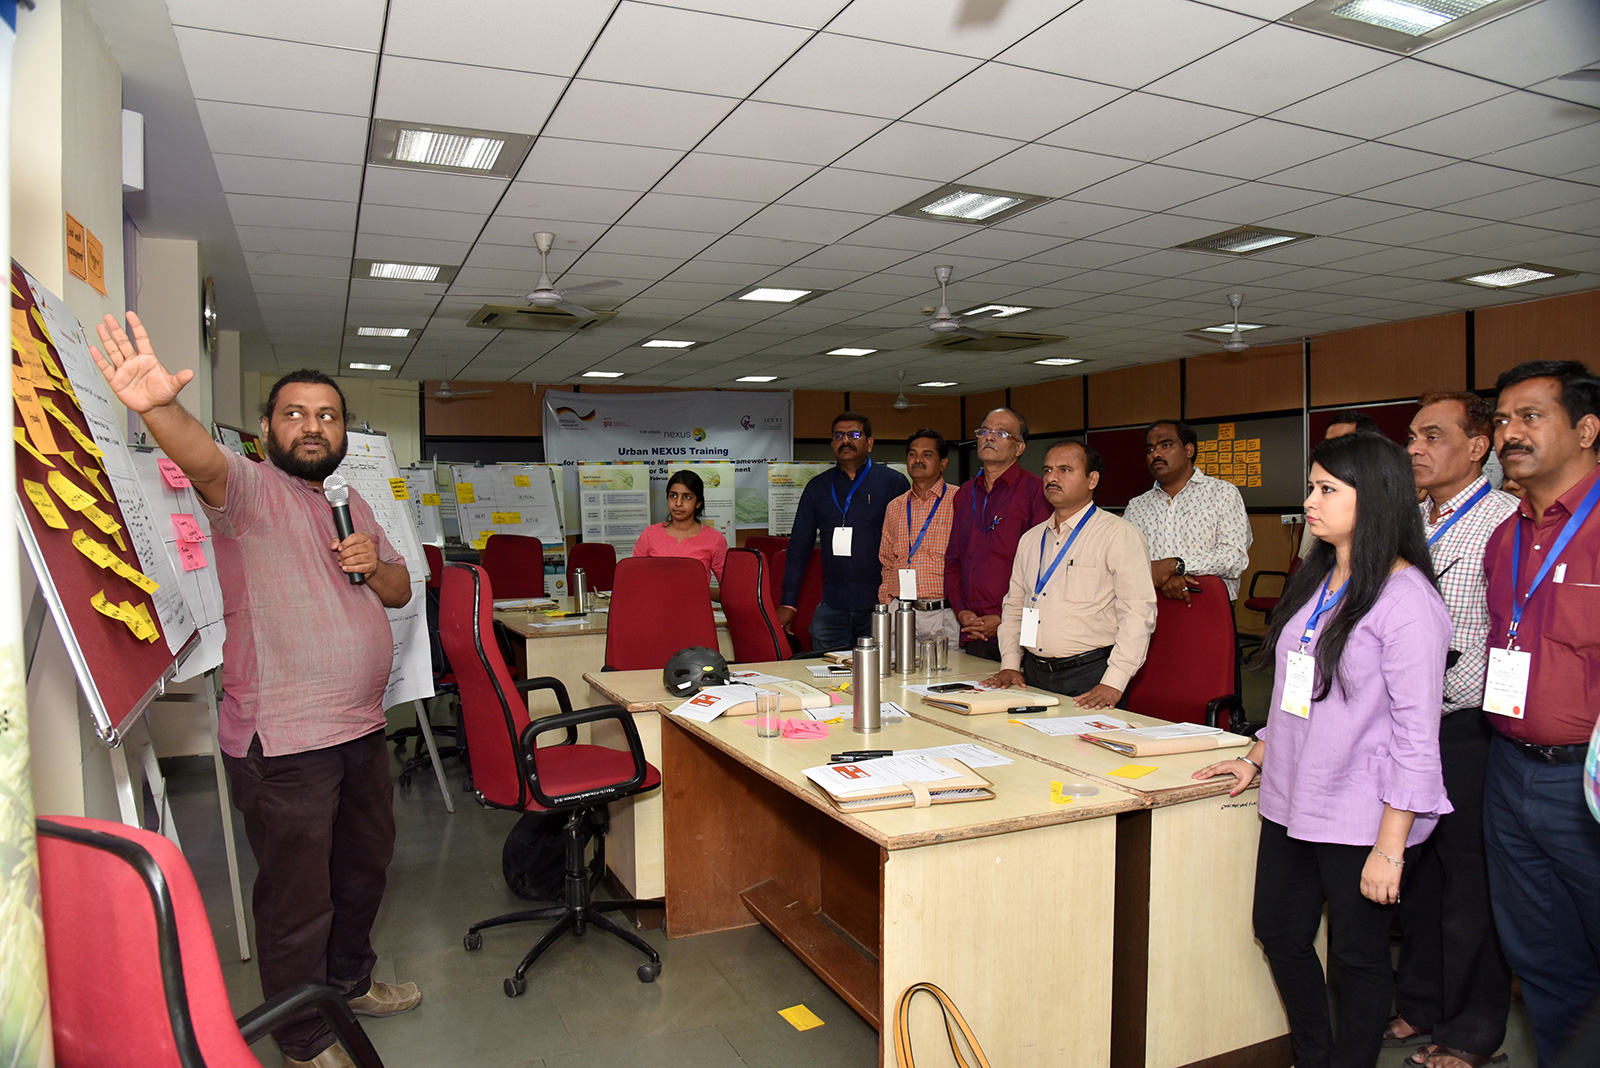 Indian Academia adopts Urban Nexus approach in their teamwork and coordination amongst institutions